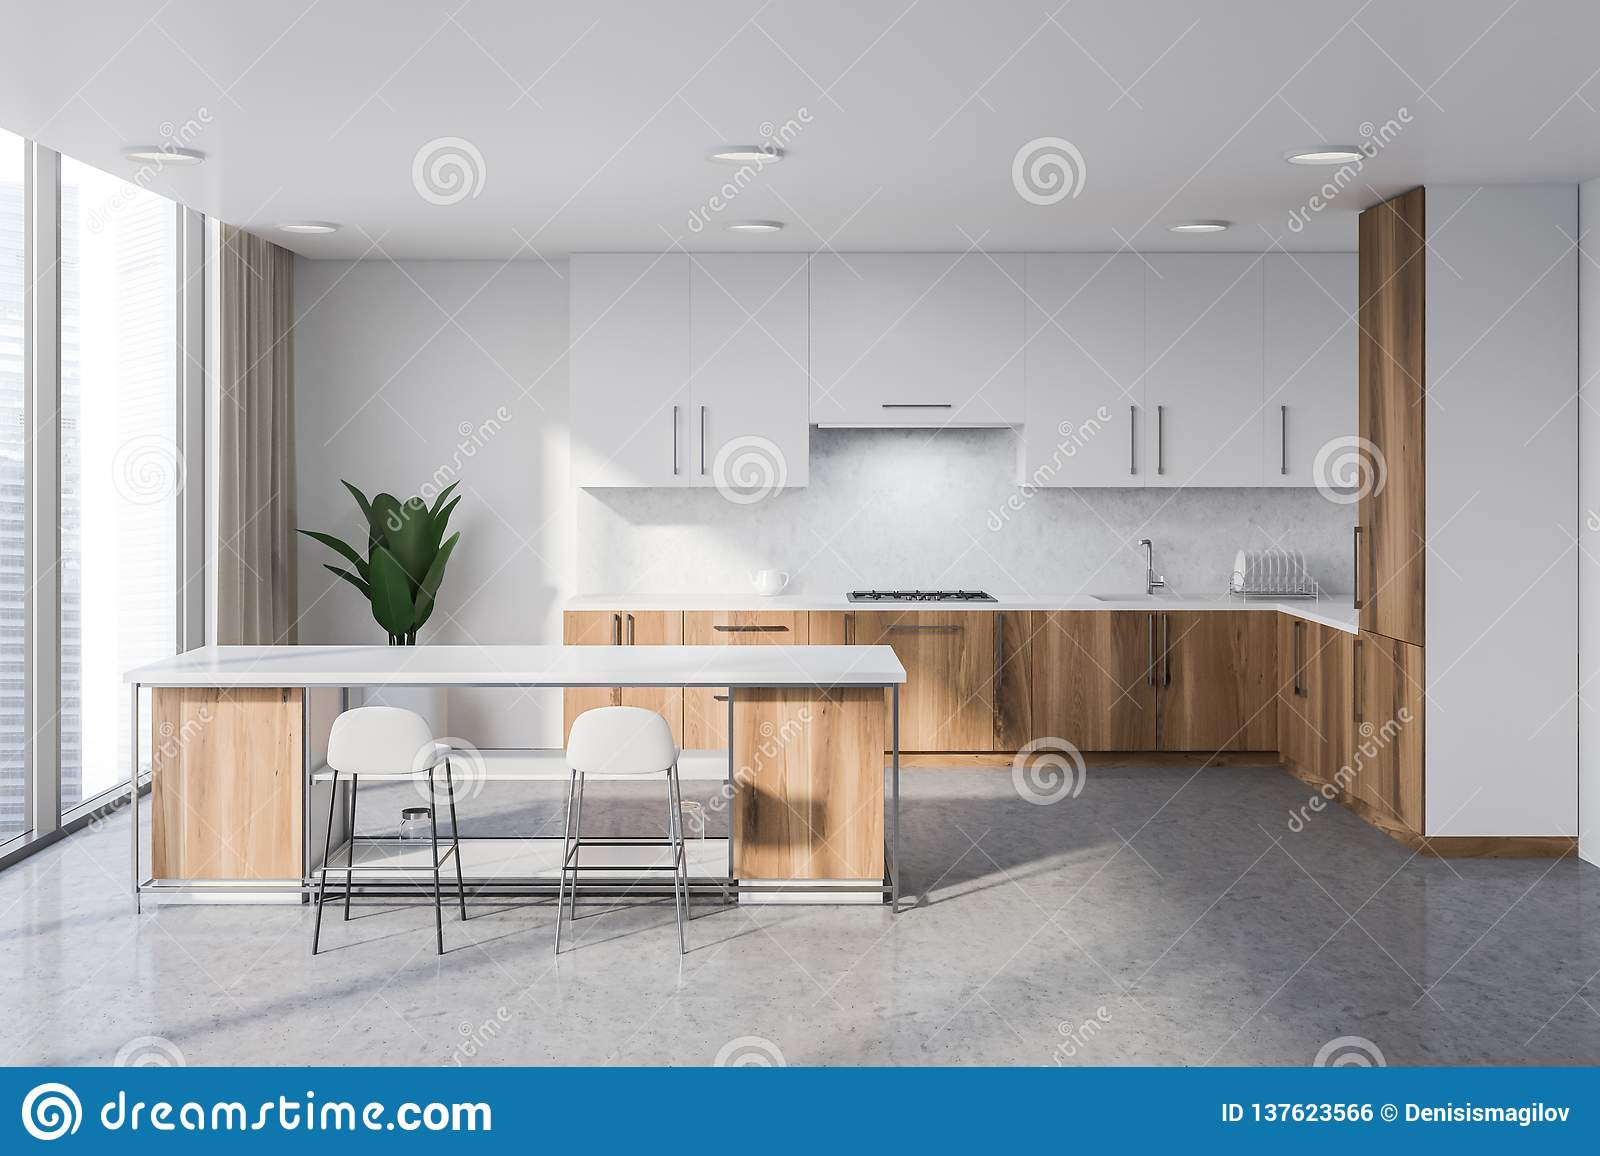 Wooden Kitchen Counter Stools White And Wooden Kitchen With Bar Stock Illustration